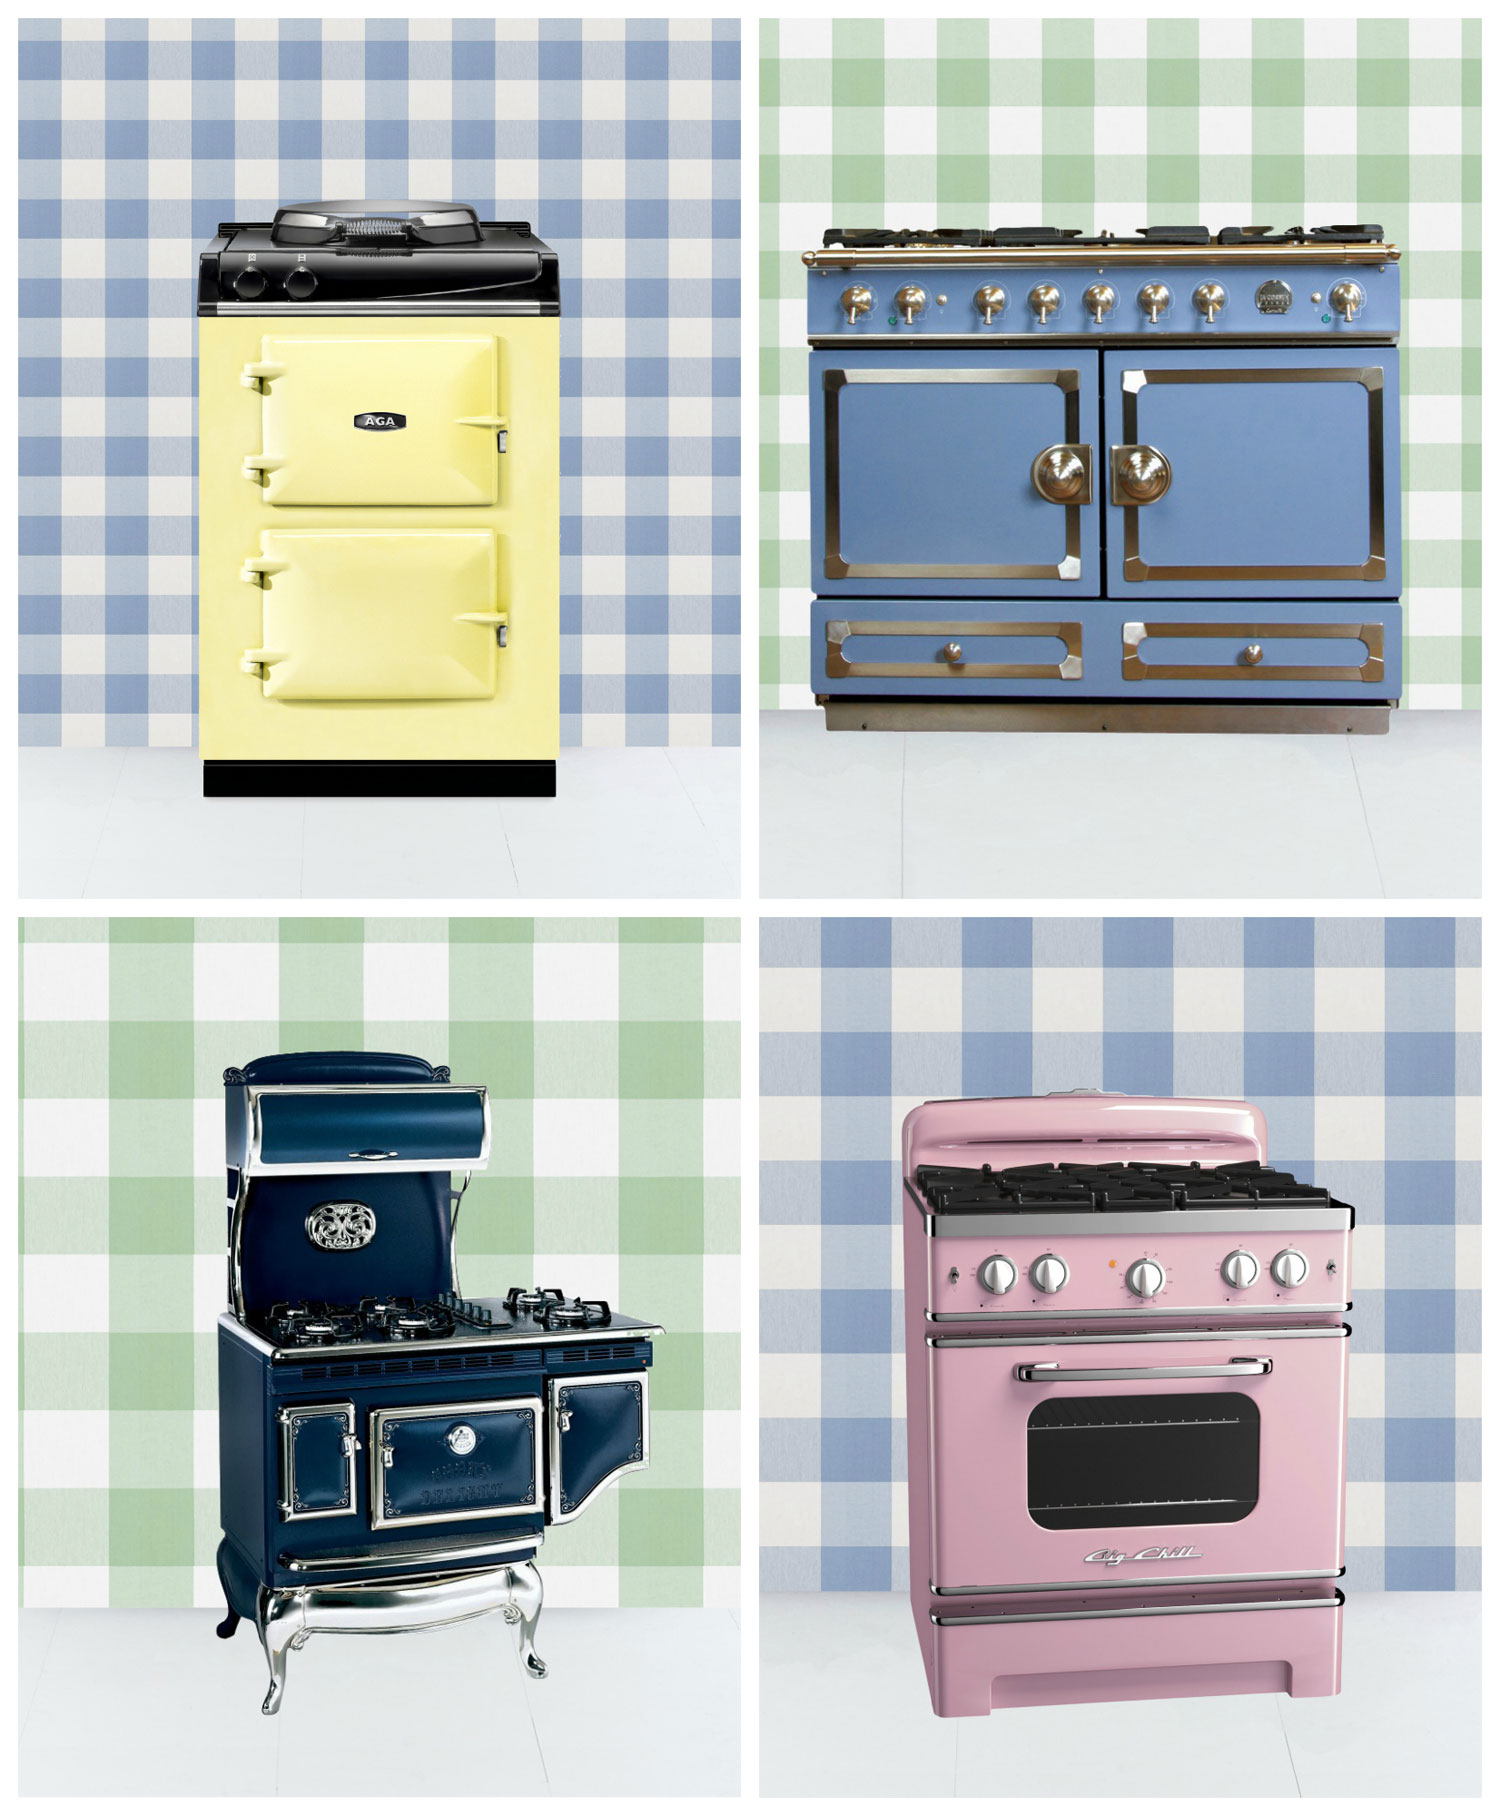 Retro kitchen stove